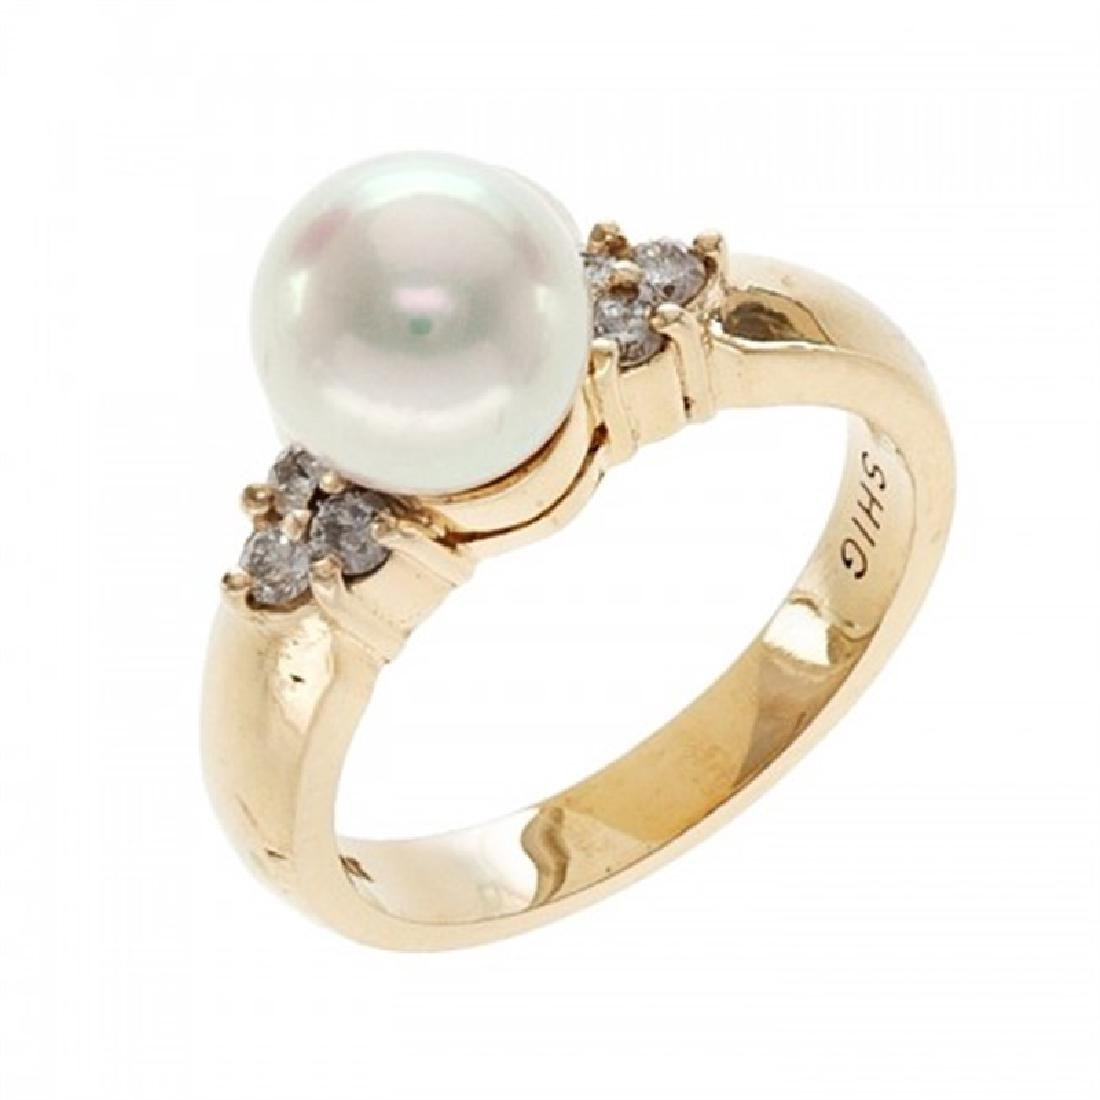 8.0-8.5mm Japanese Akoya Pearl Ring with Diamonds